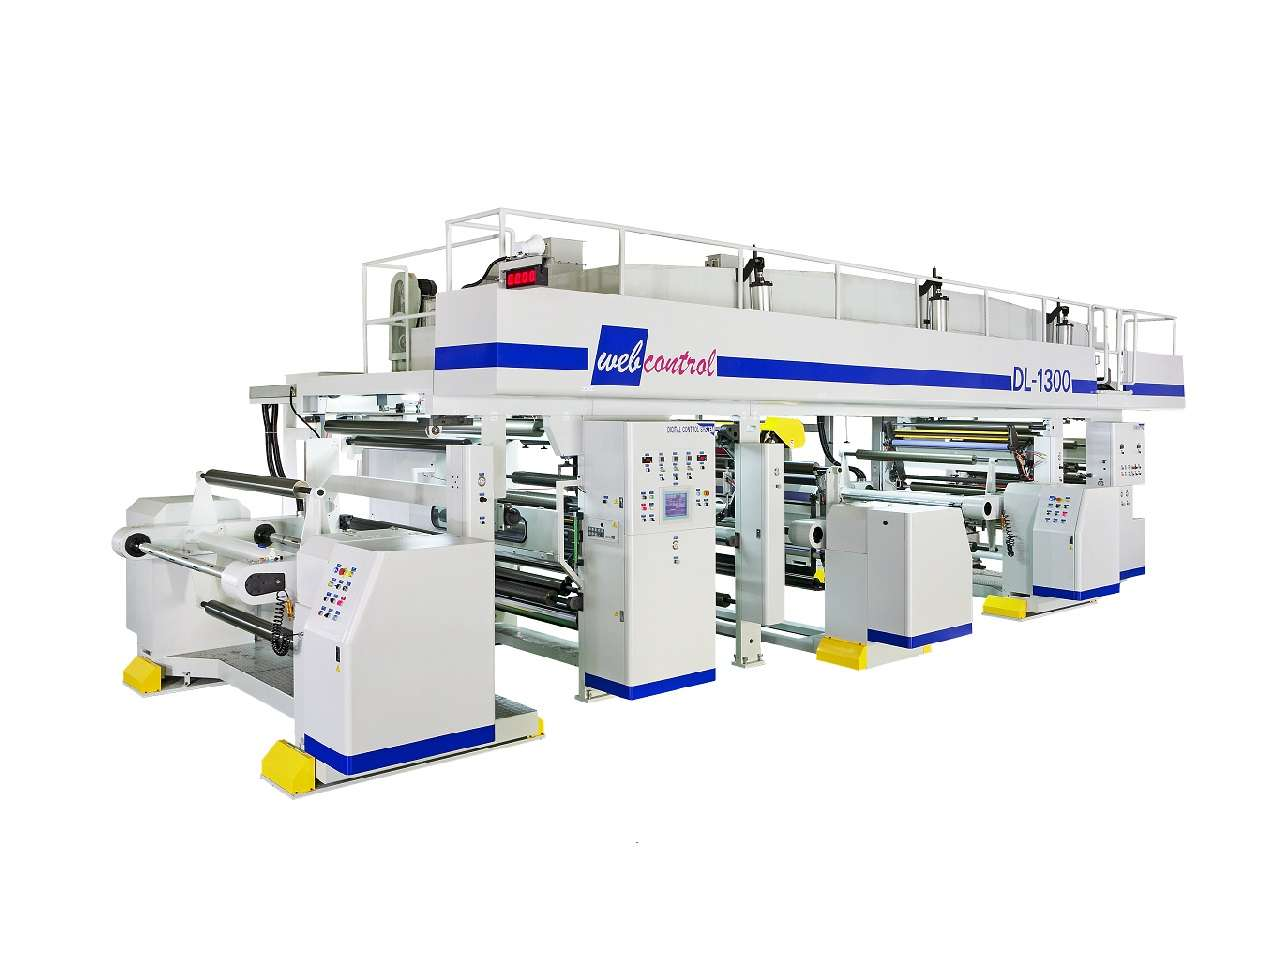 Dry Laminator Shafted Type DL-1300